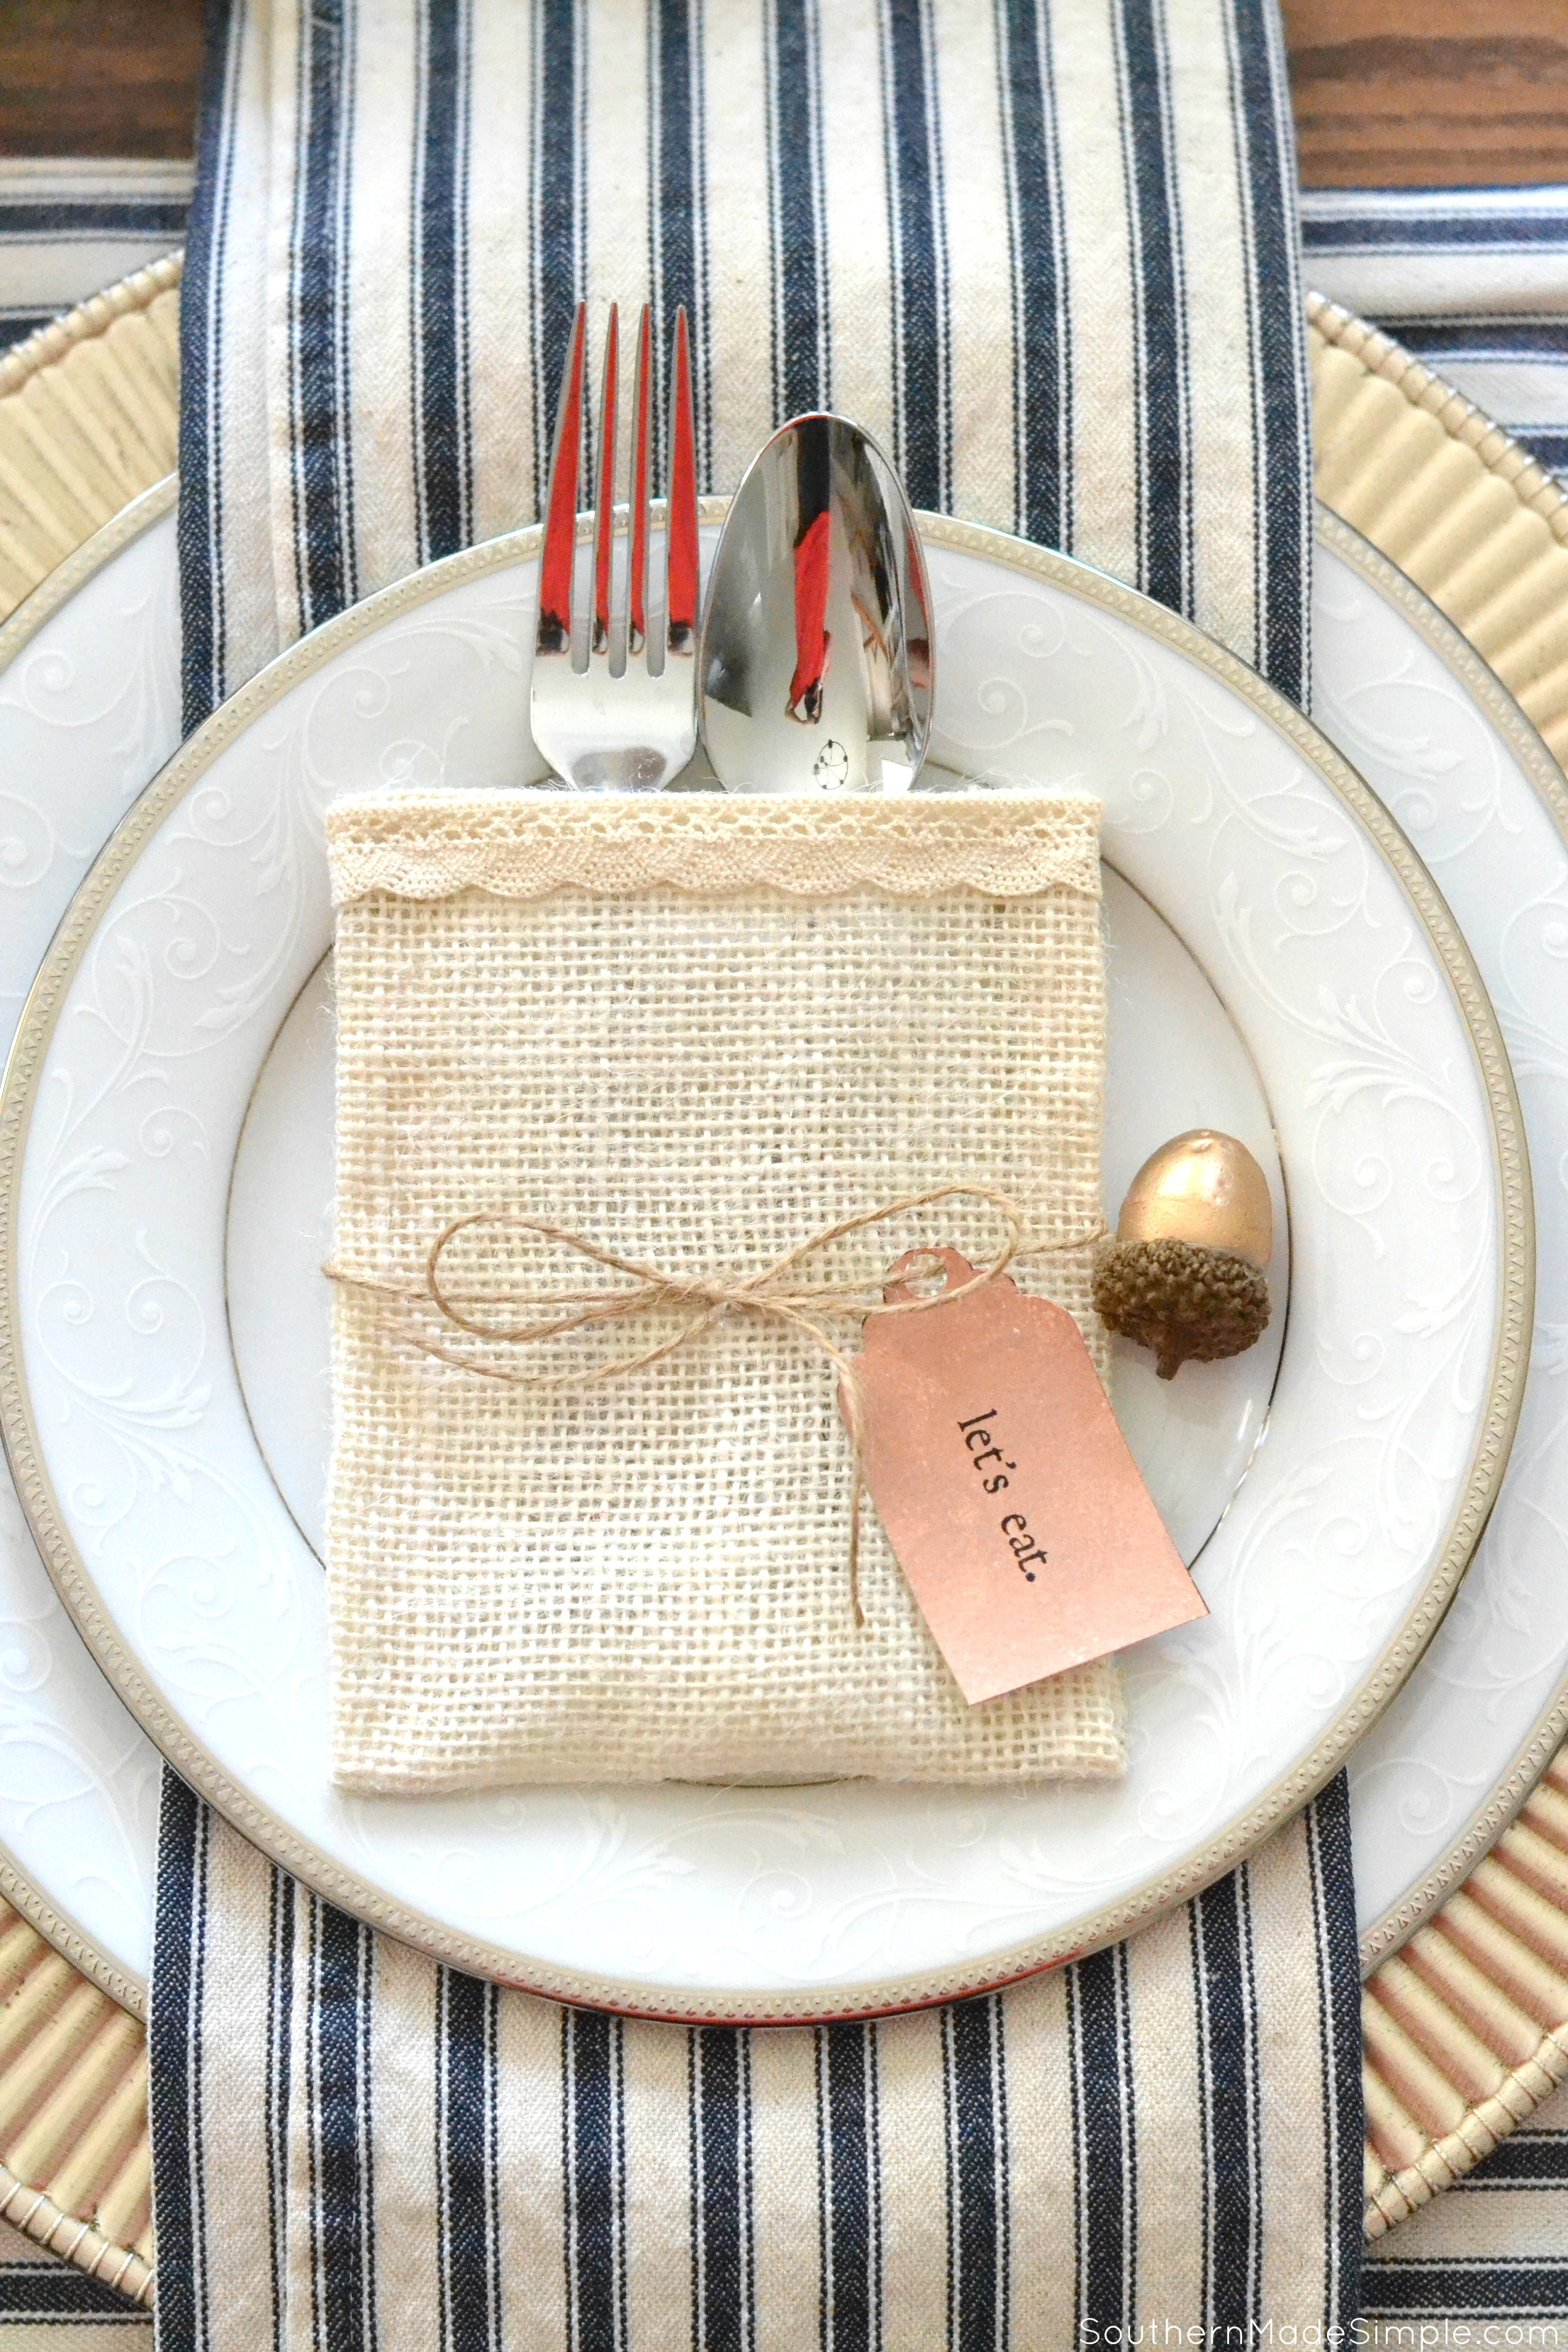 Simple Friendsgiving Entertaining + DIY Utensil Holder